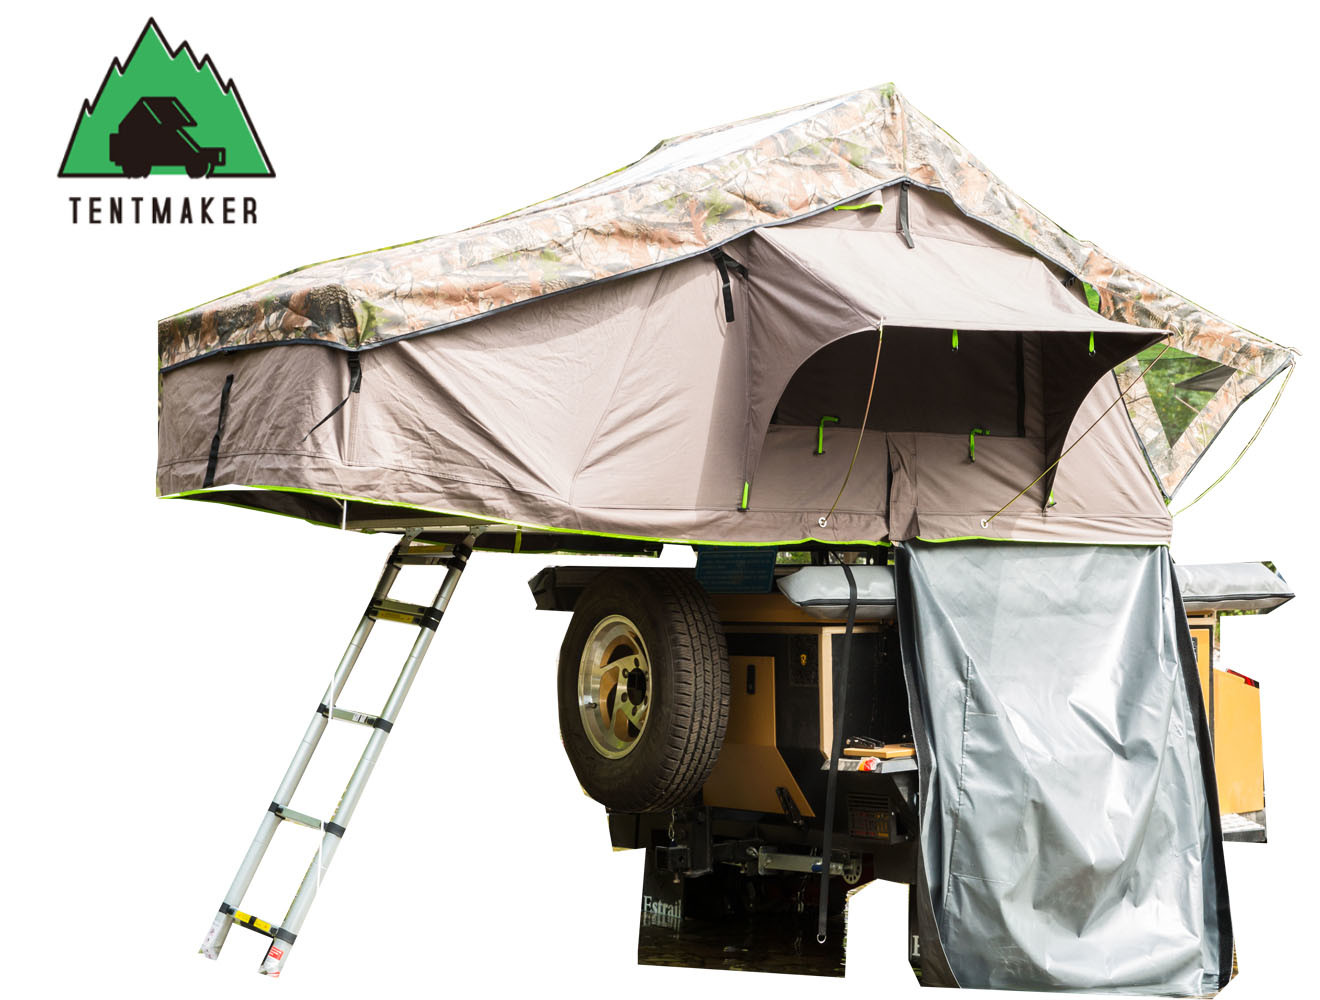 2017 Top Seller Car Roof Top Tent with Side Awnings and Annex for Outdoor Camping